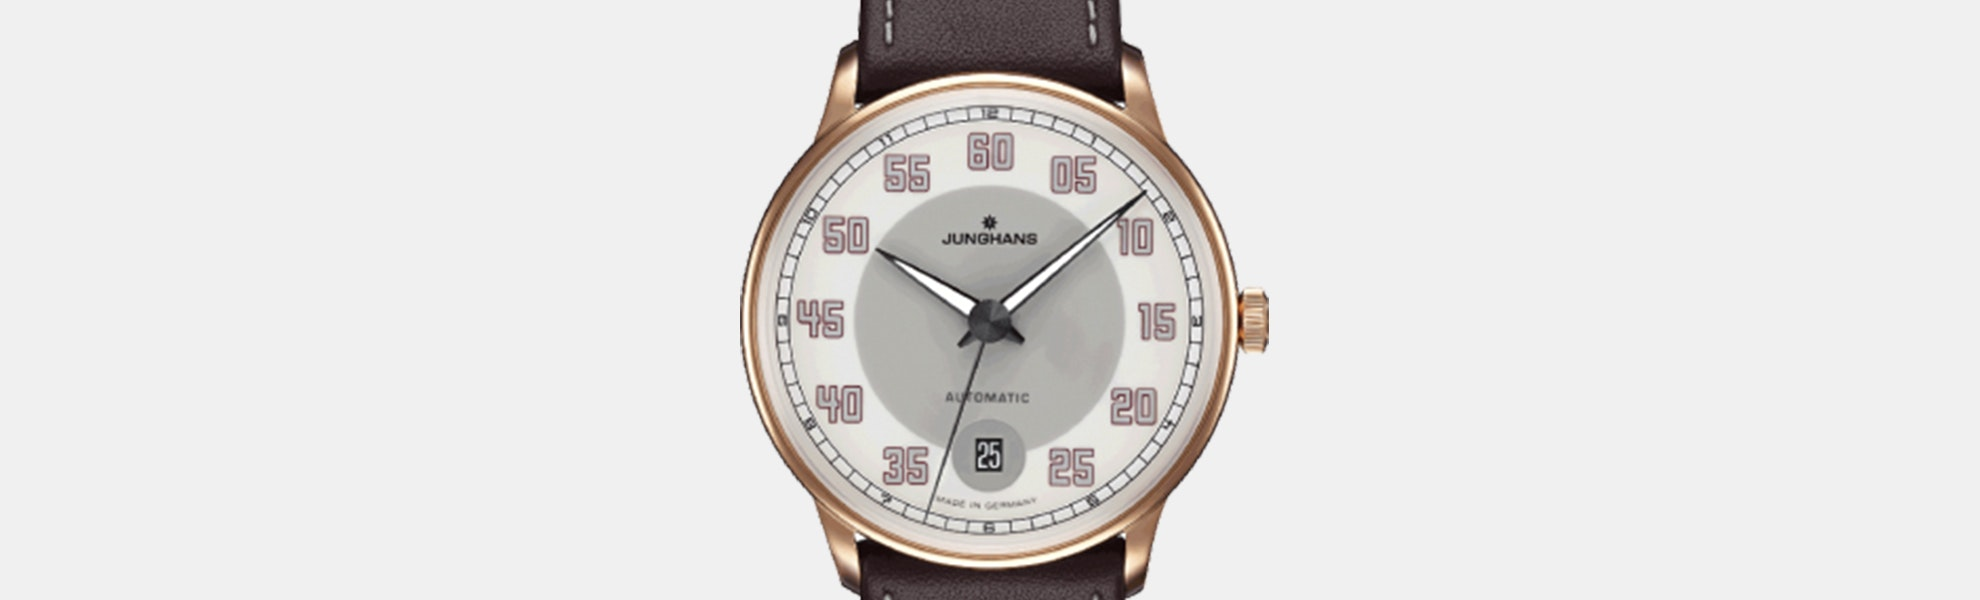 Junghans Meister Driver Automatic Watch